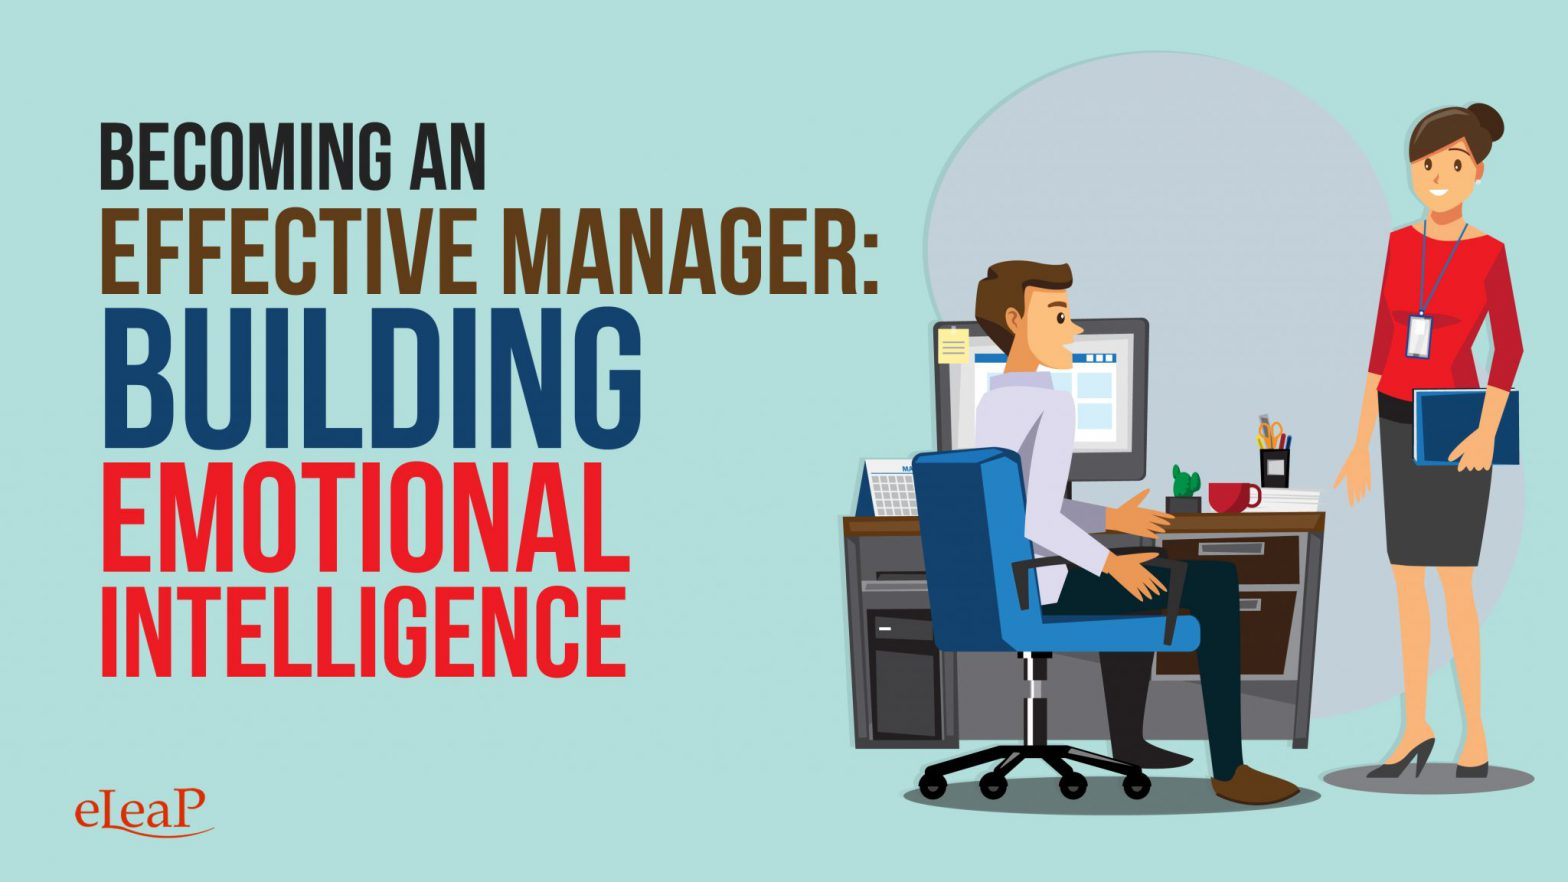 Becoming An Effective Manager: Building Emotional Intelligence